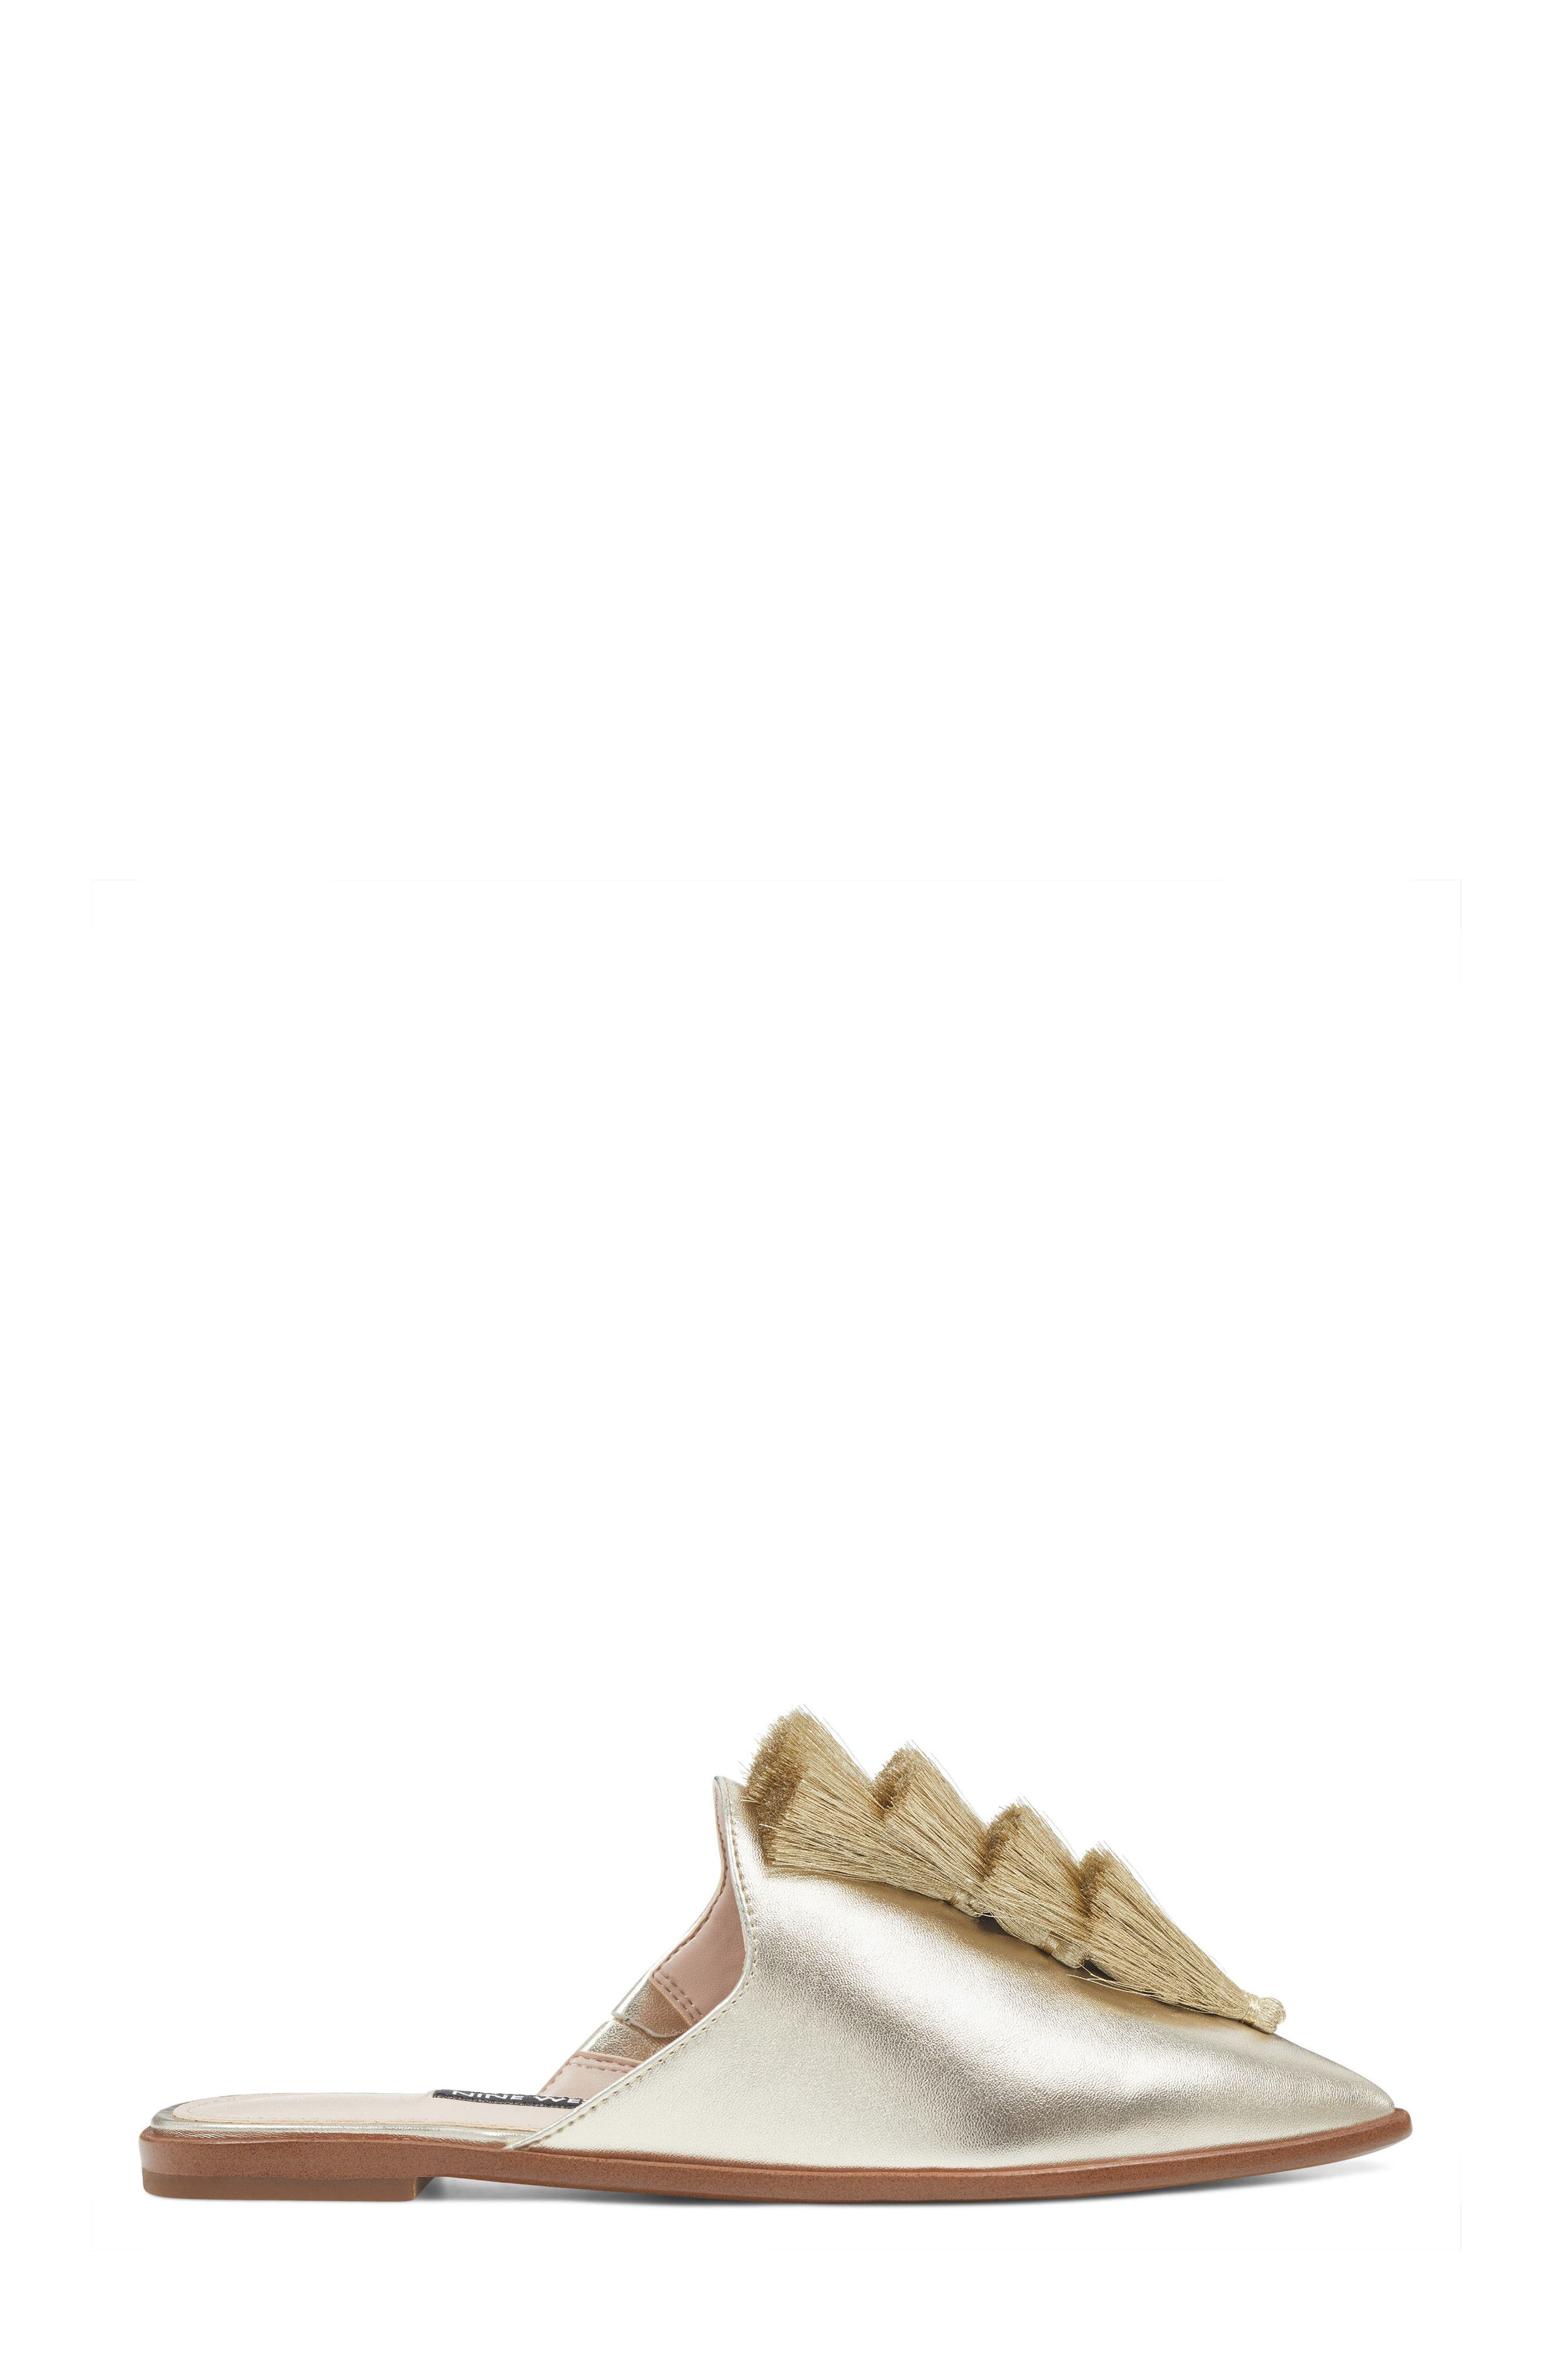 Ollial Fringed Loafer Mule,                             Alternate thumbnail 3, color,                             Light Gold Leather